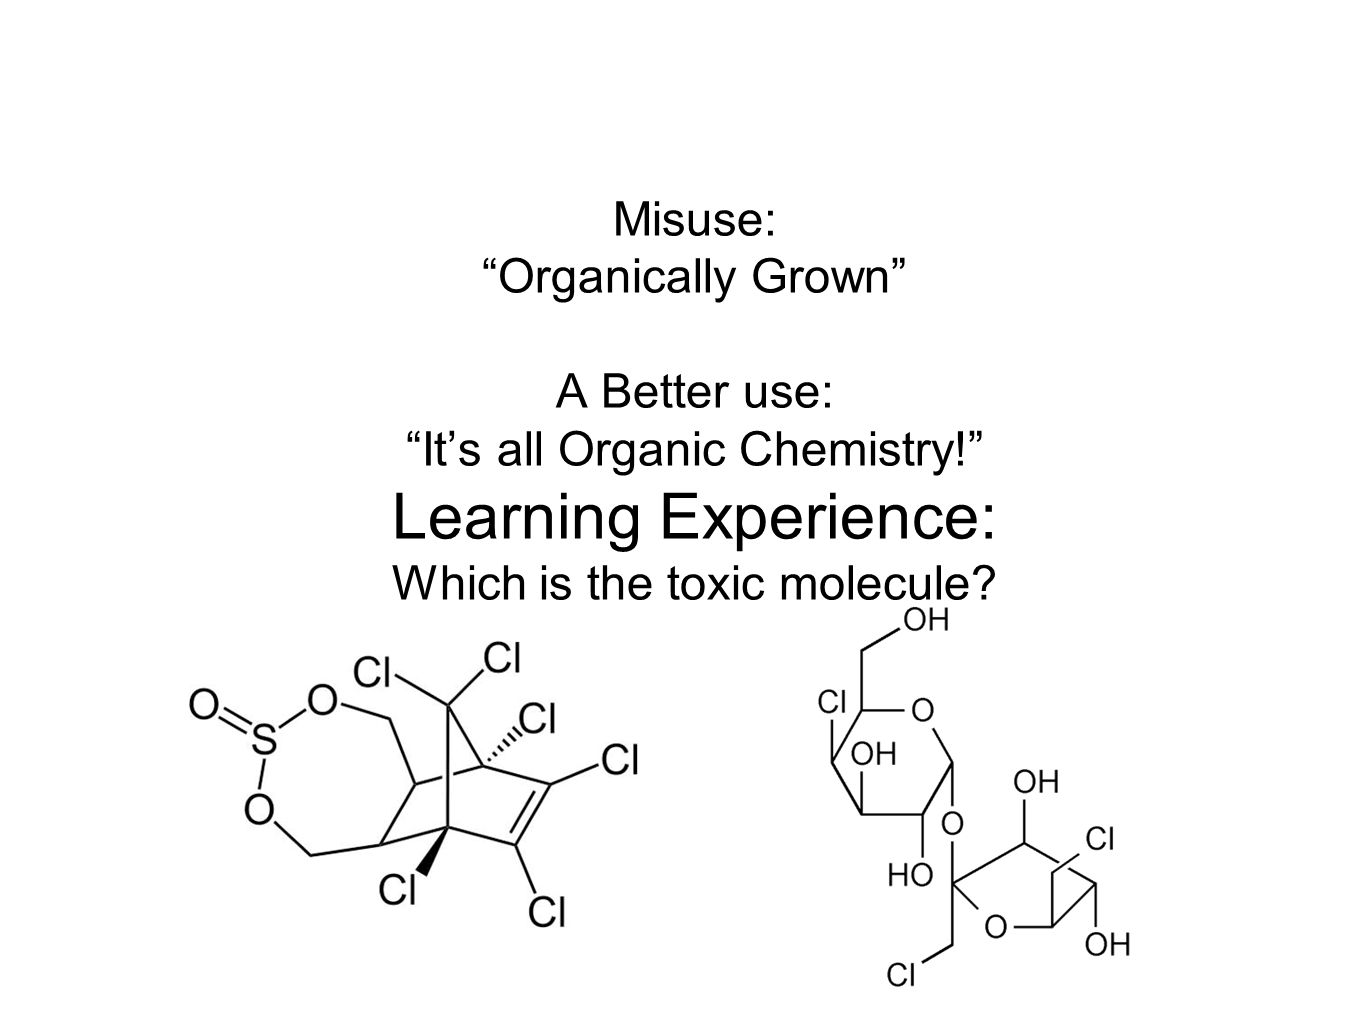 Misuse: Organically Grown A Better use: It's all Organic Chemistry! Learning Experience: Which is the toxic molecule